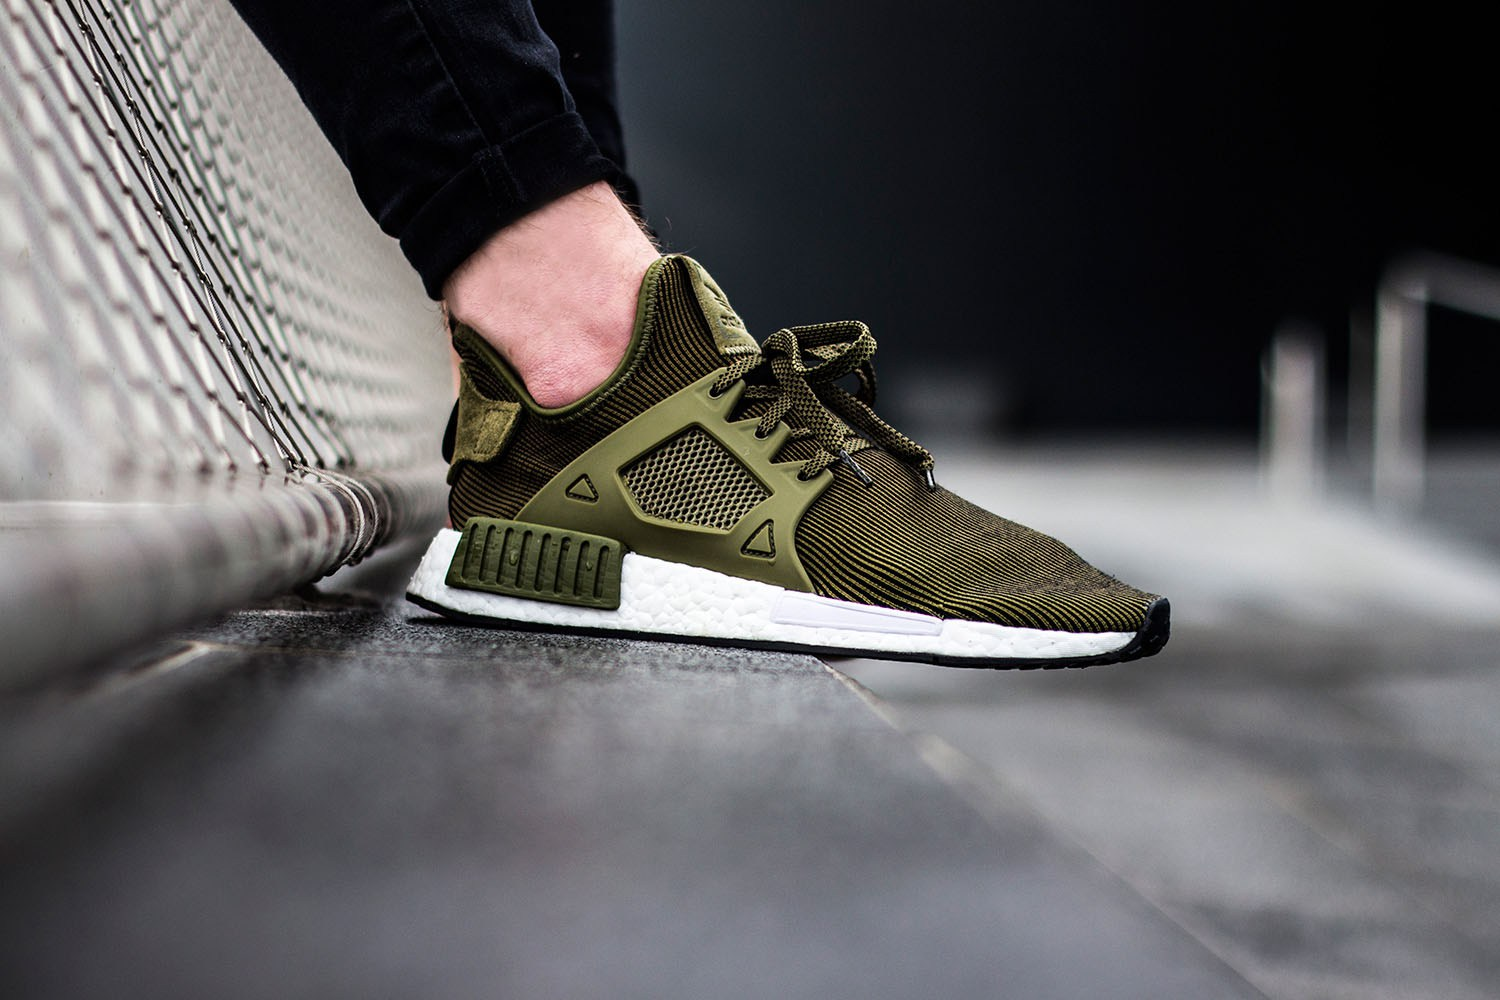 vuaimx Adidas NMD XR1 Duck Camo Green Shoes for sale in KL City, Kuala